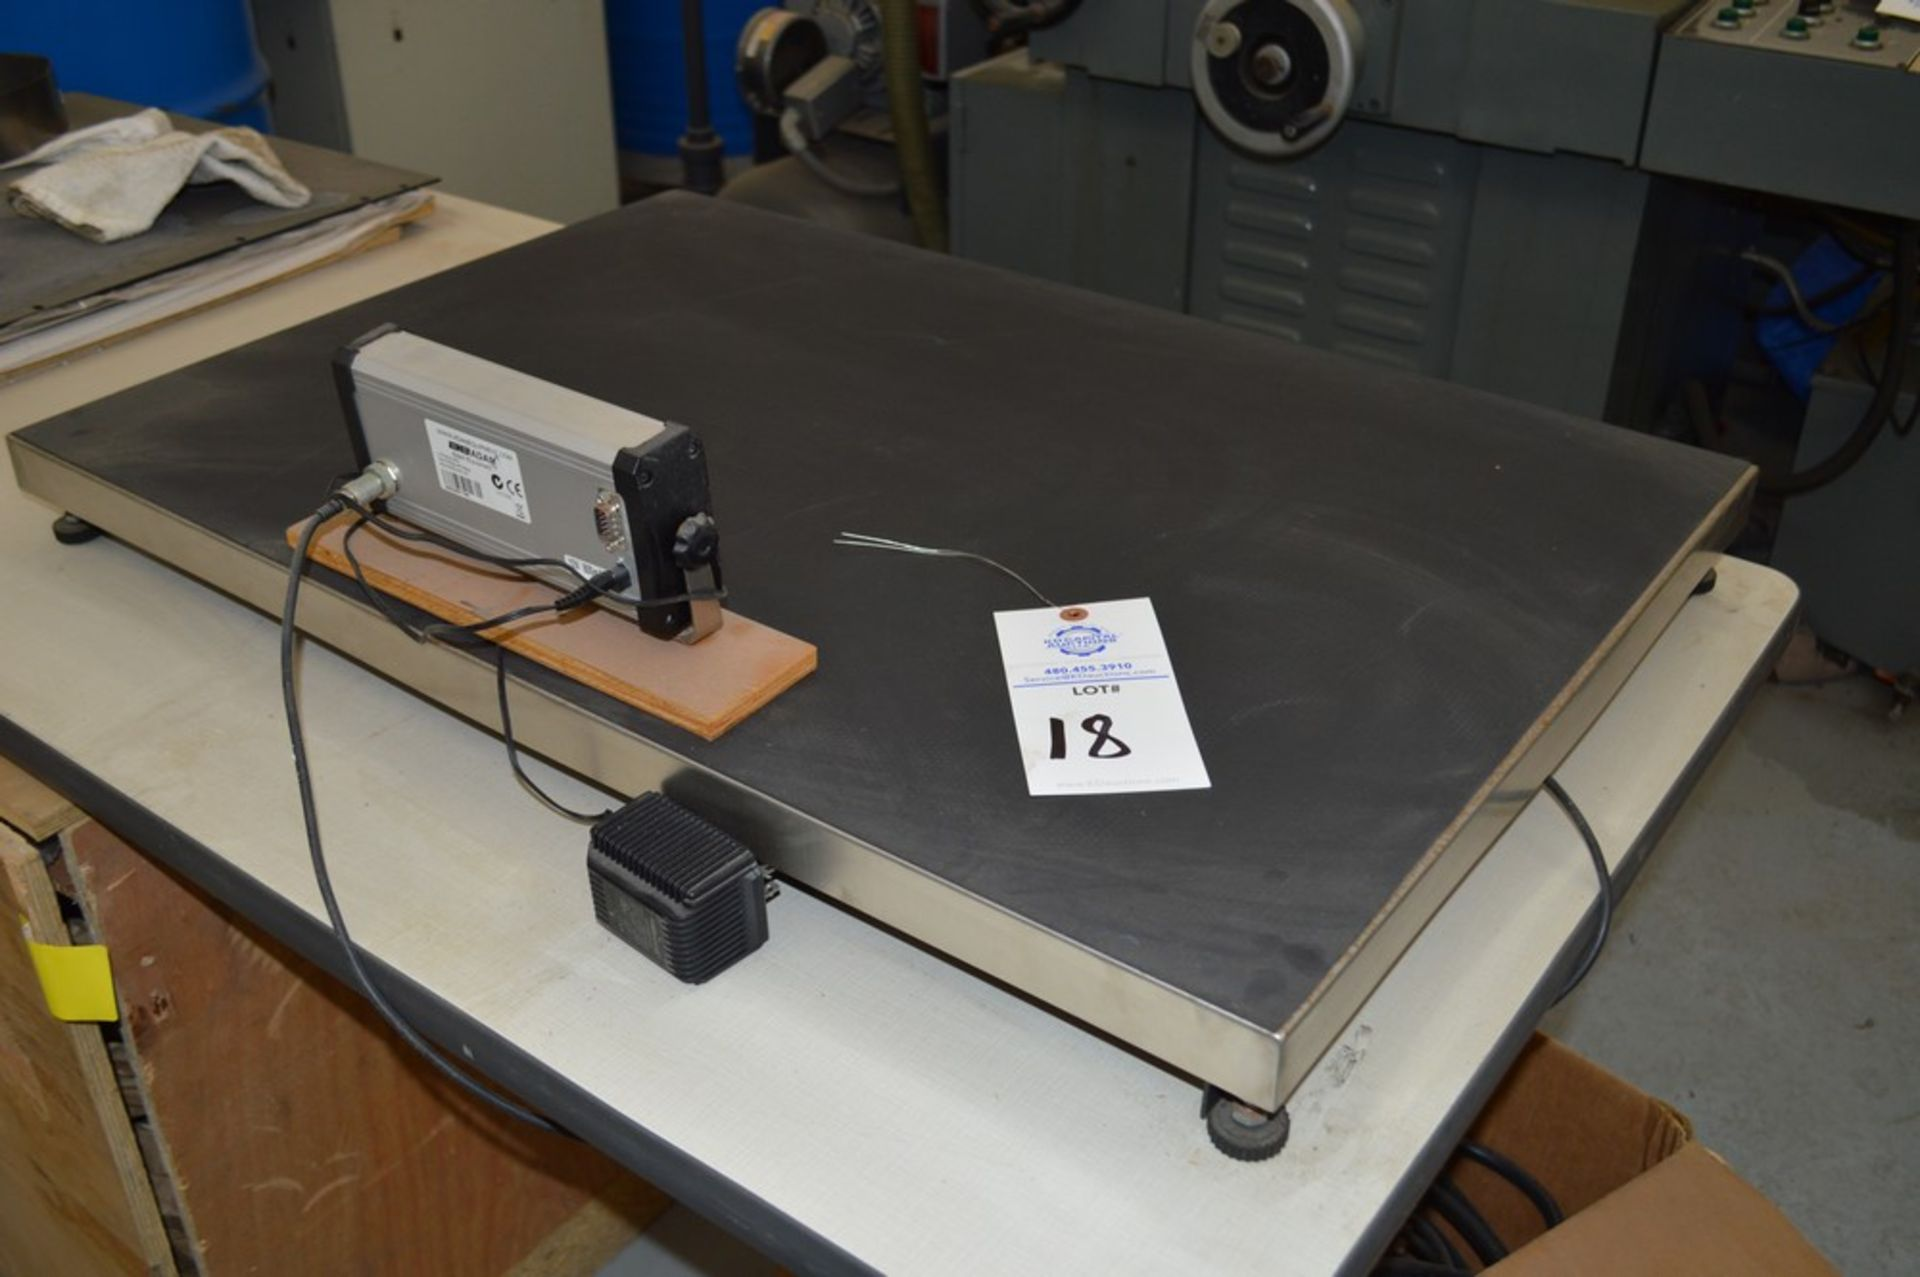 35 1/4 x 23 1/4 440 lb scale with digital read out, Adam equipment 2001 control - Image 3 of 4